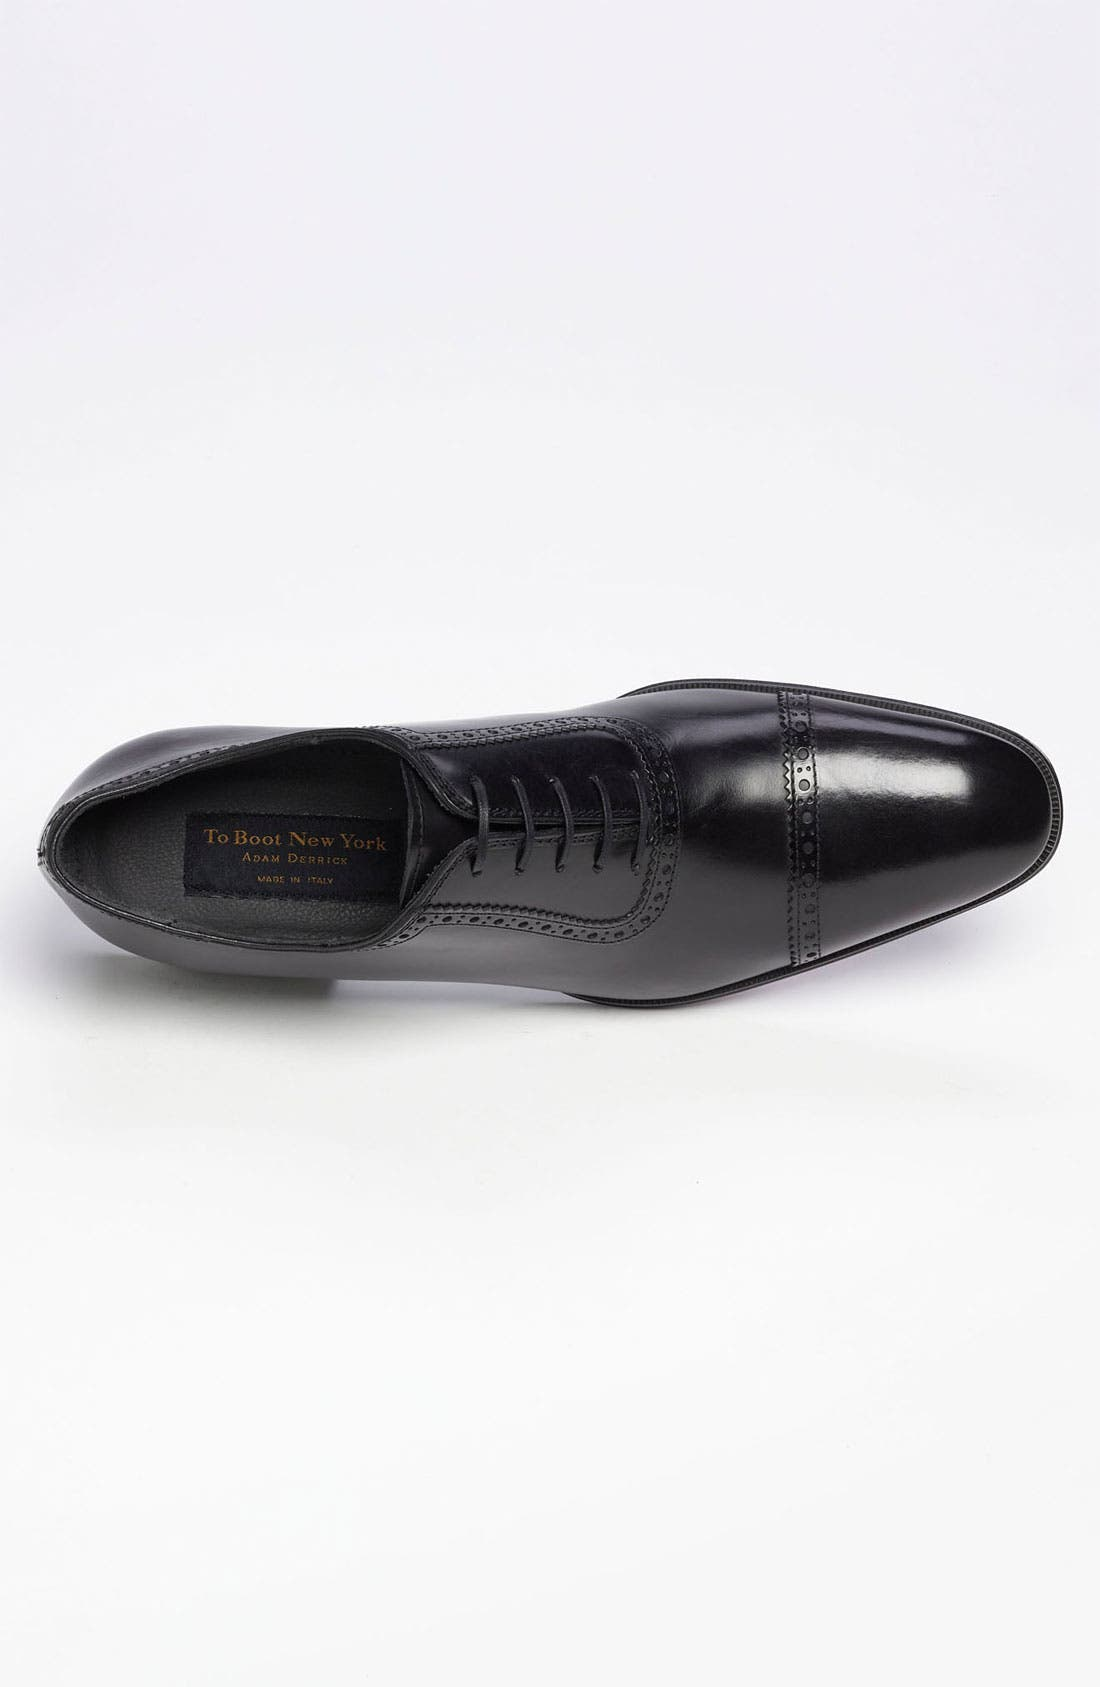 TO BOOT NEW YORK,                             'Warwick' Cap Toe Oxford,                             Alternate thumbnail 3, color,                             001